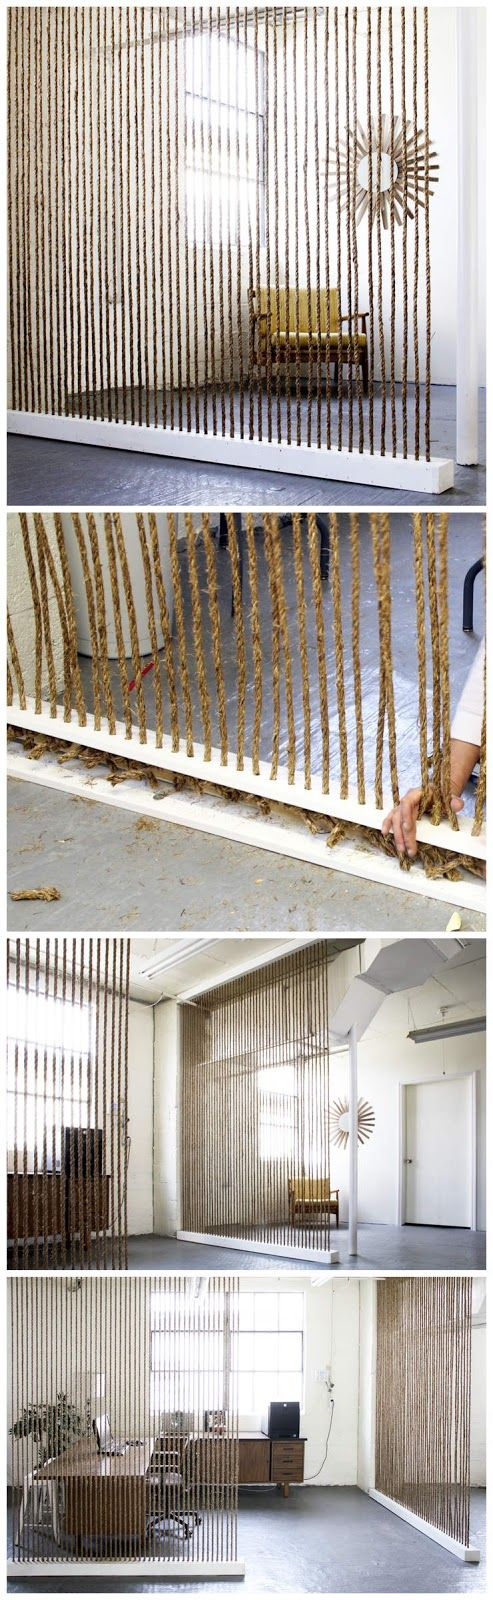 ROPE WALL      ♪ ♪ ... #inspiration #diy GB http://www.pinterest.com/gigibrazil/boards/